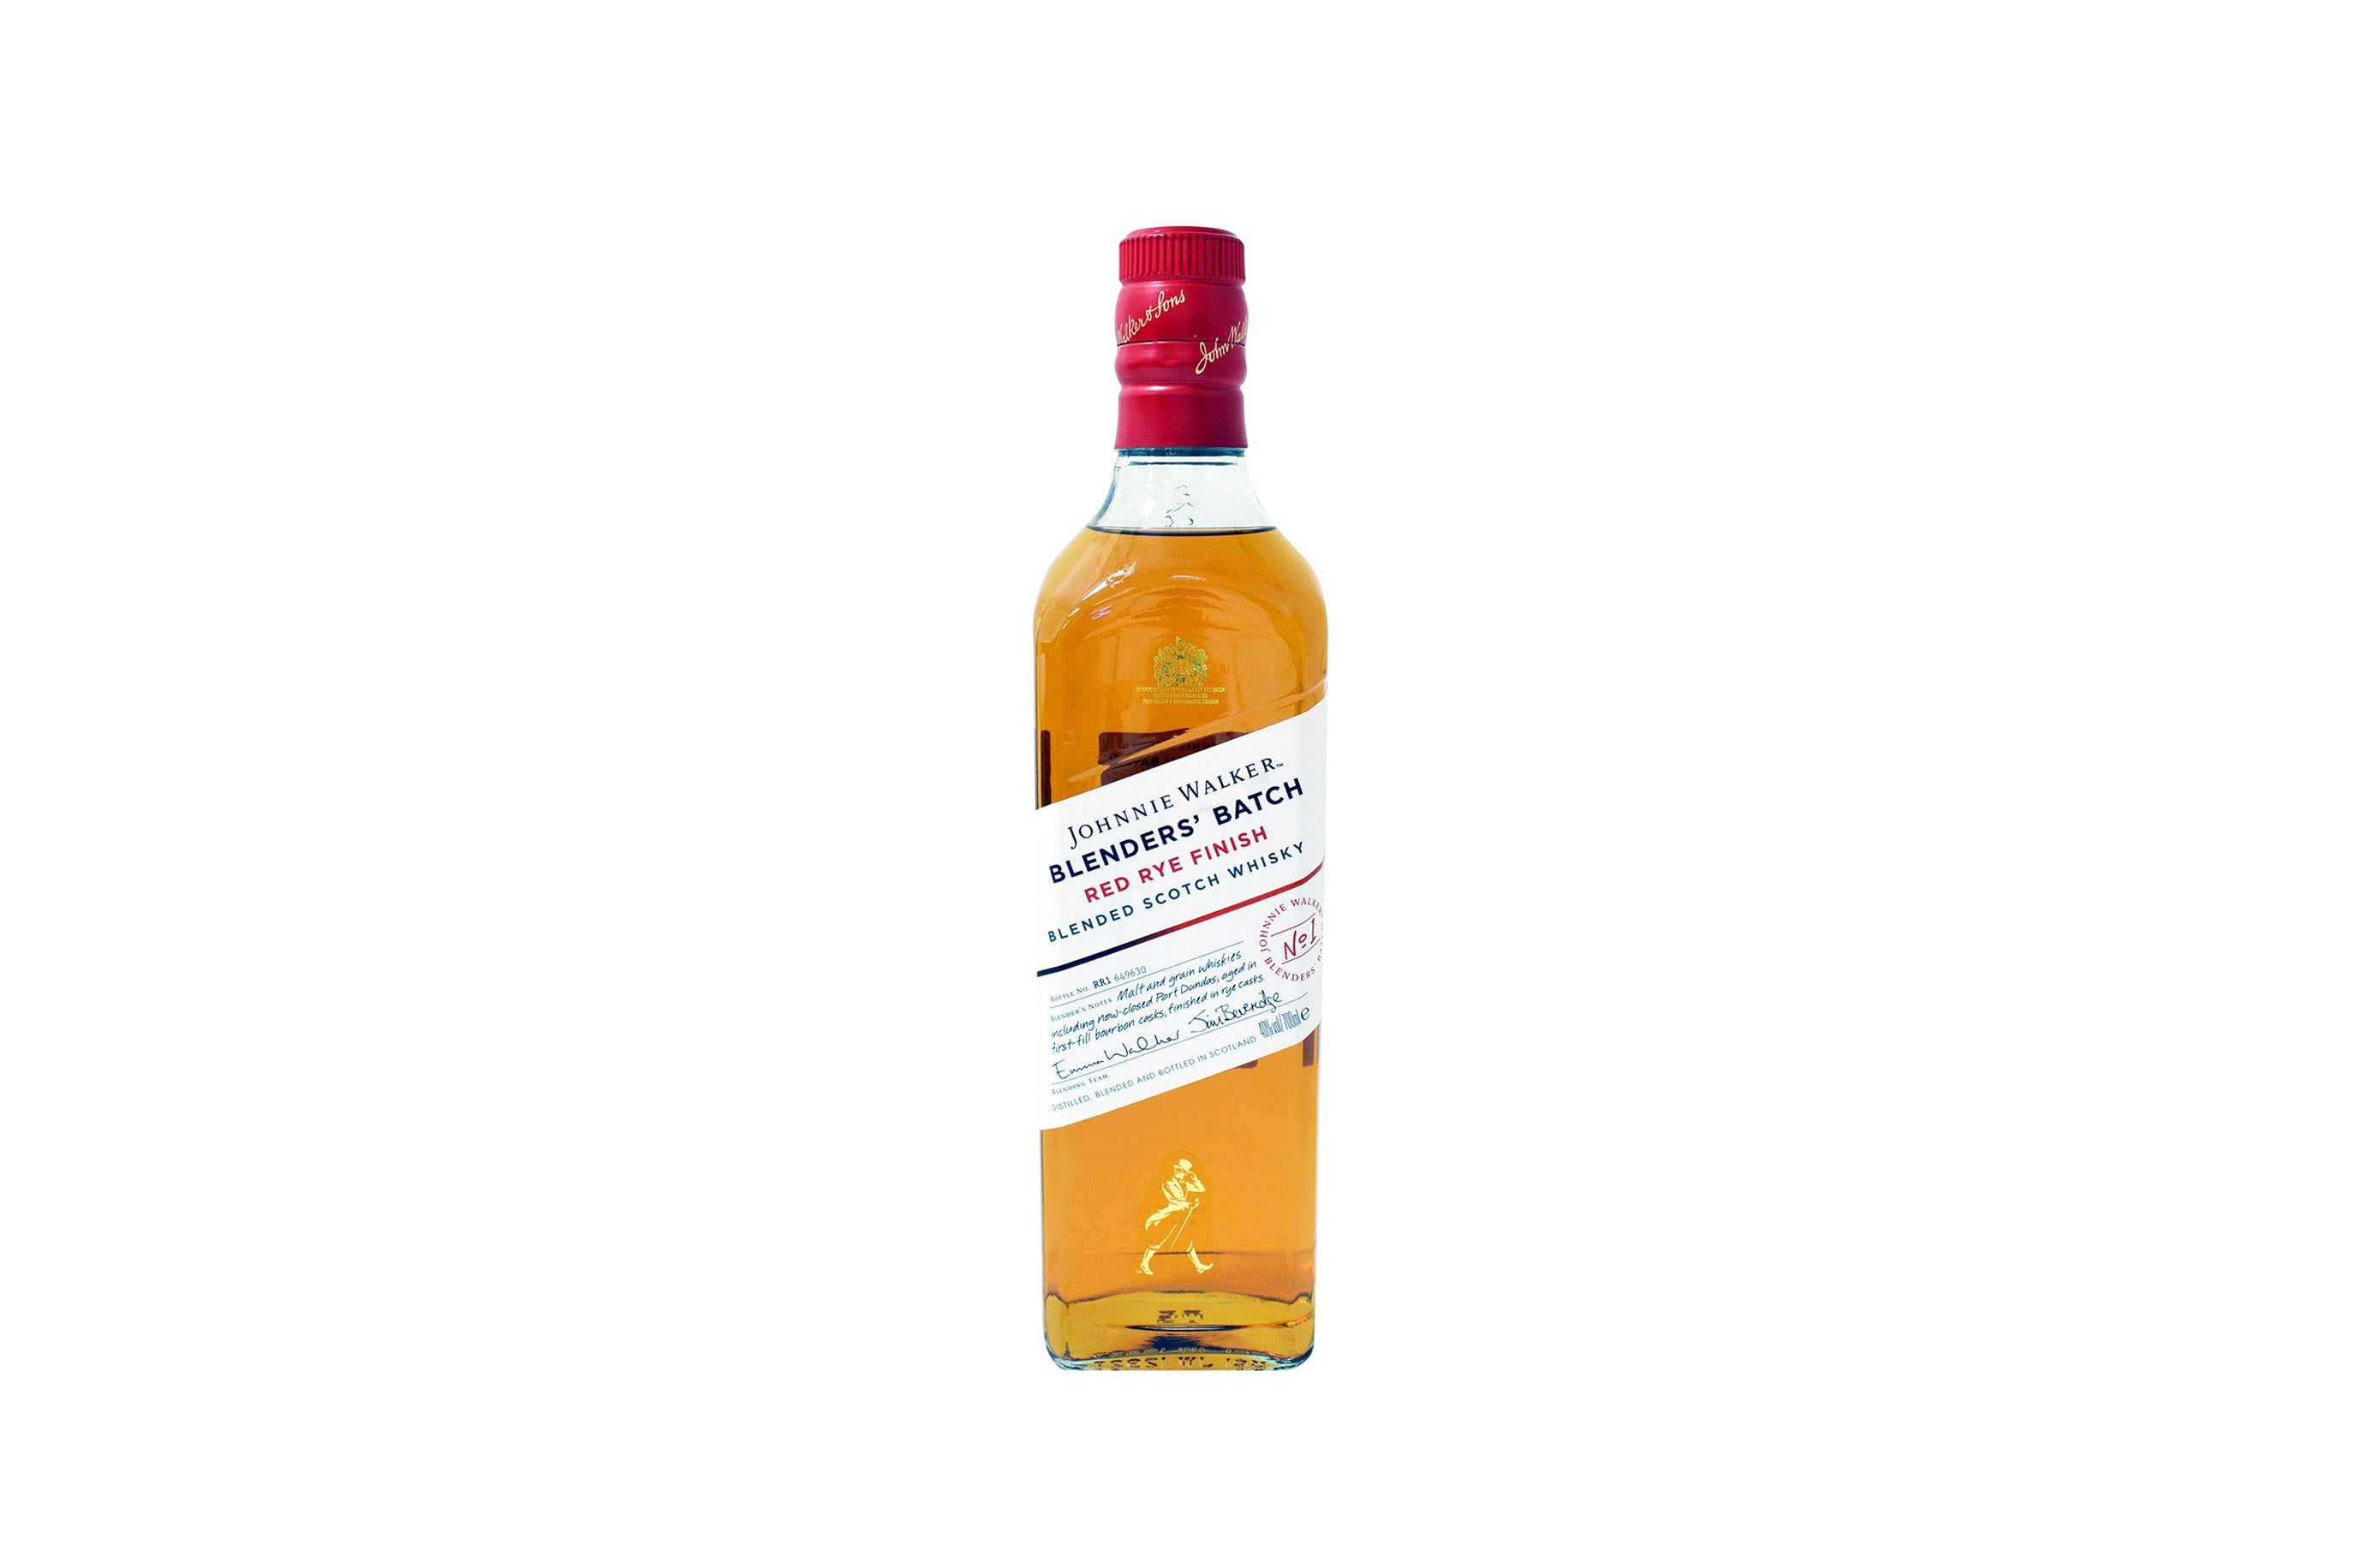 JOHNNIE WALKER RED RYE 0.7LT